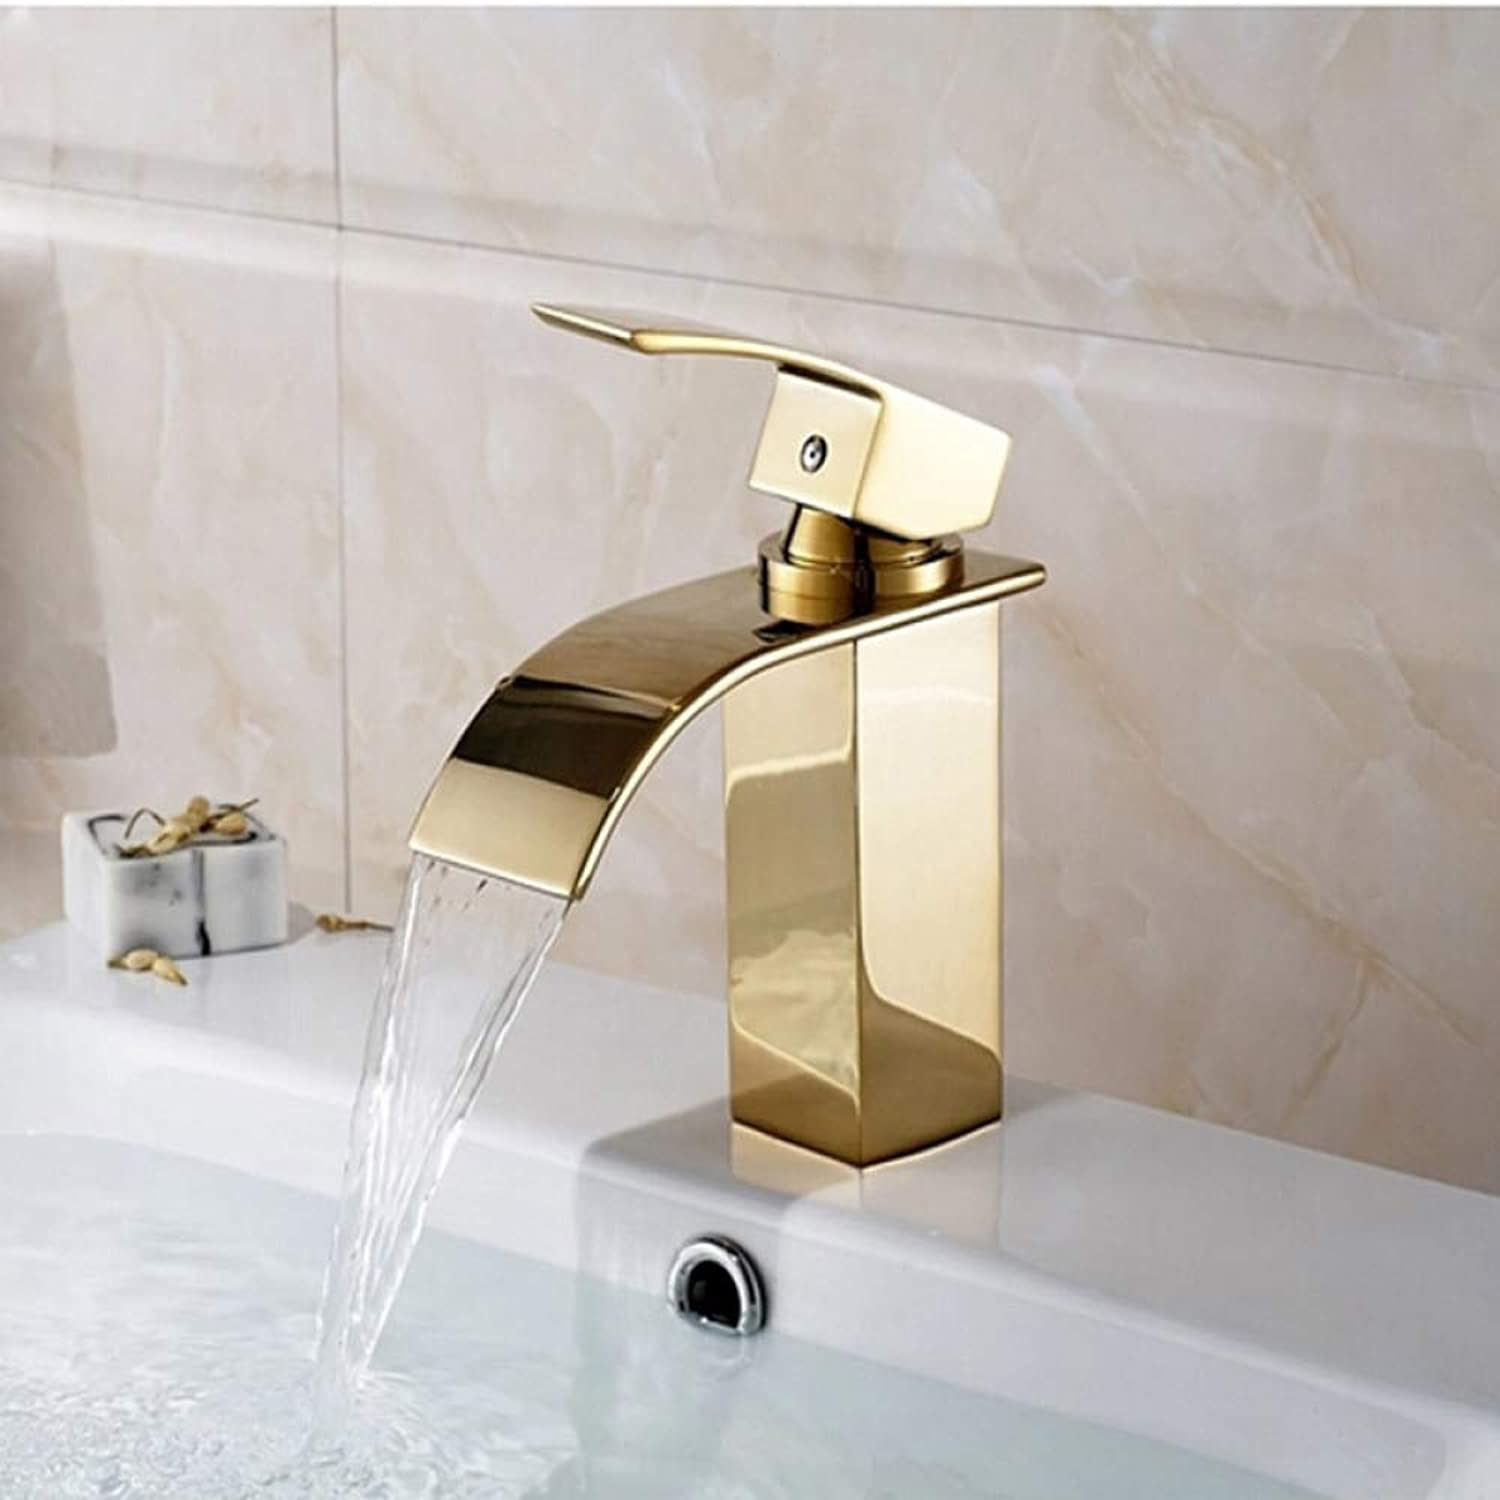 SLTZUB Deck Mount Waterfall Bathroom Faucet anity essel Sinks Mixer Tap golden Basin Faucets Wholesale And Retail